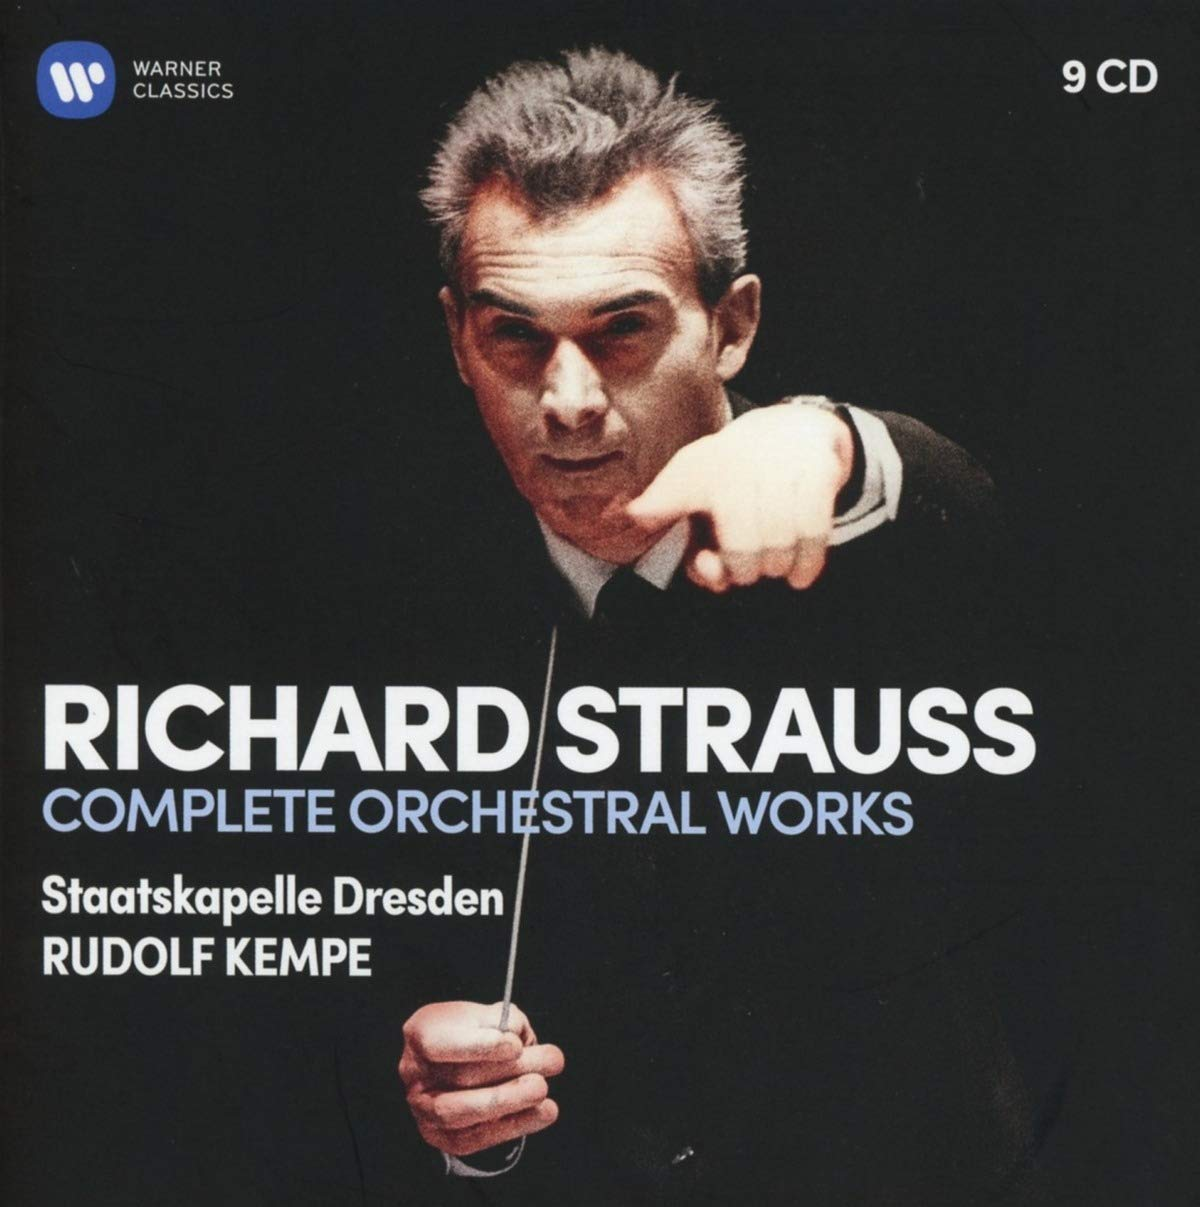 Richard Strauss (1864-1949) - Page 4 61ZEQjucJ2L._SL1207_